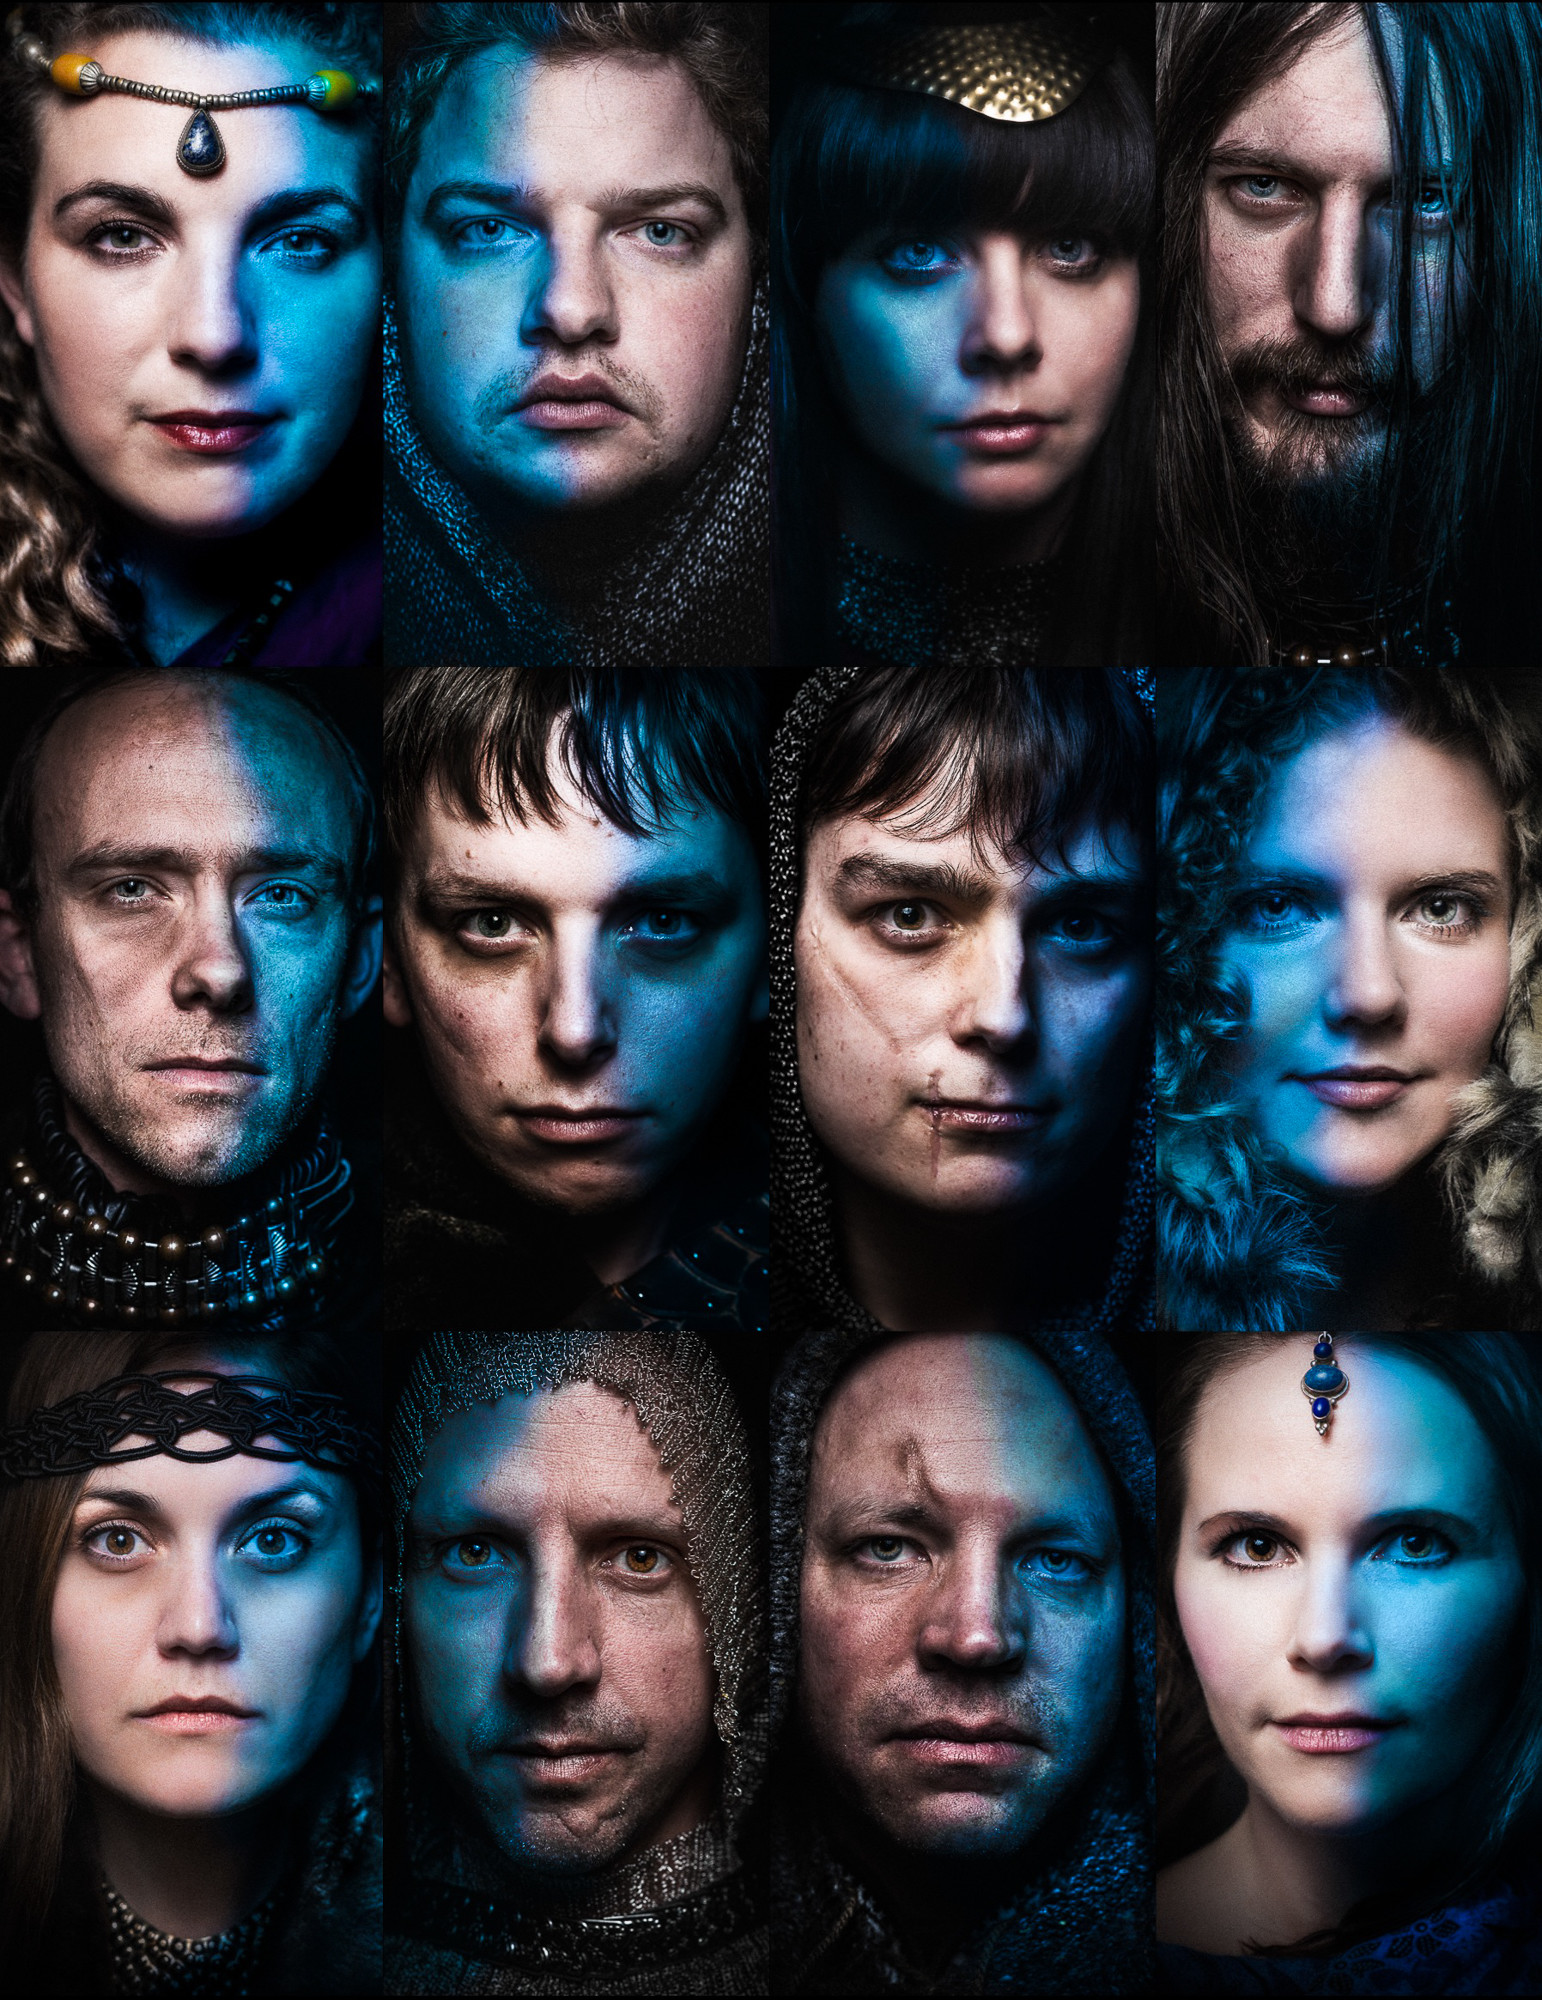 How To Take Game Of Thrones-Inspired Portraits